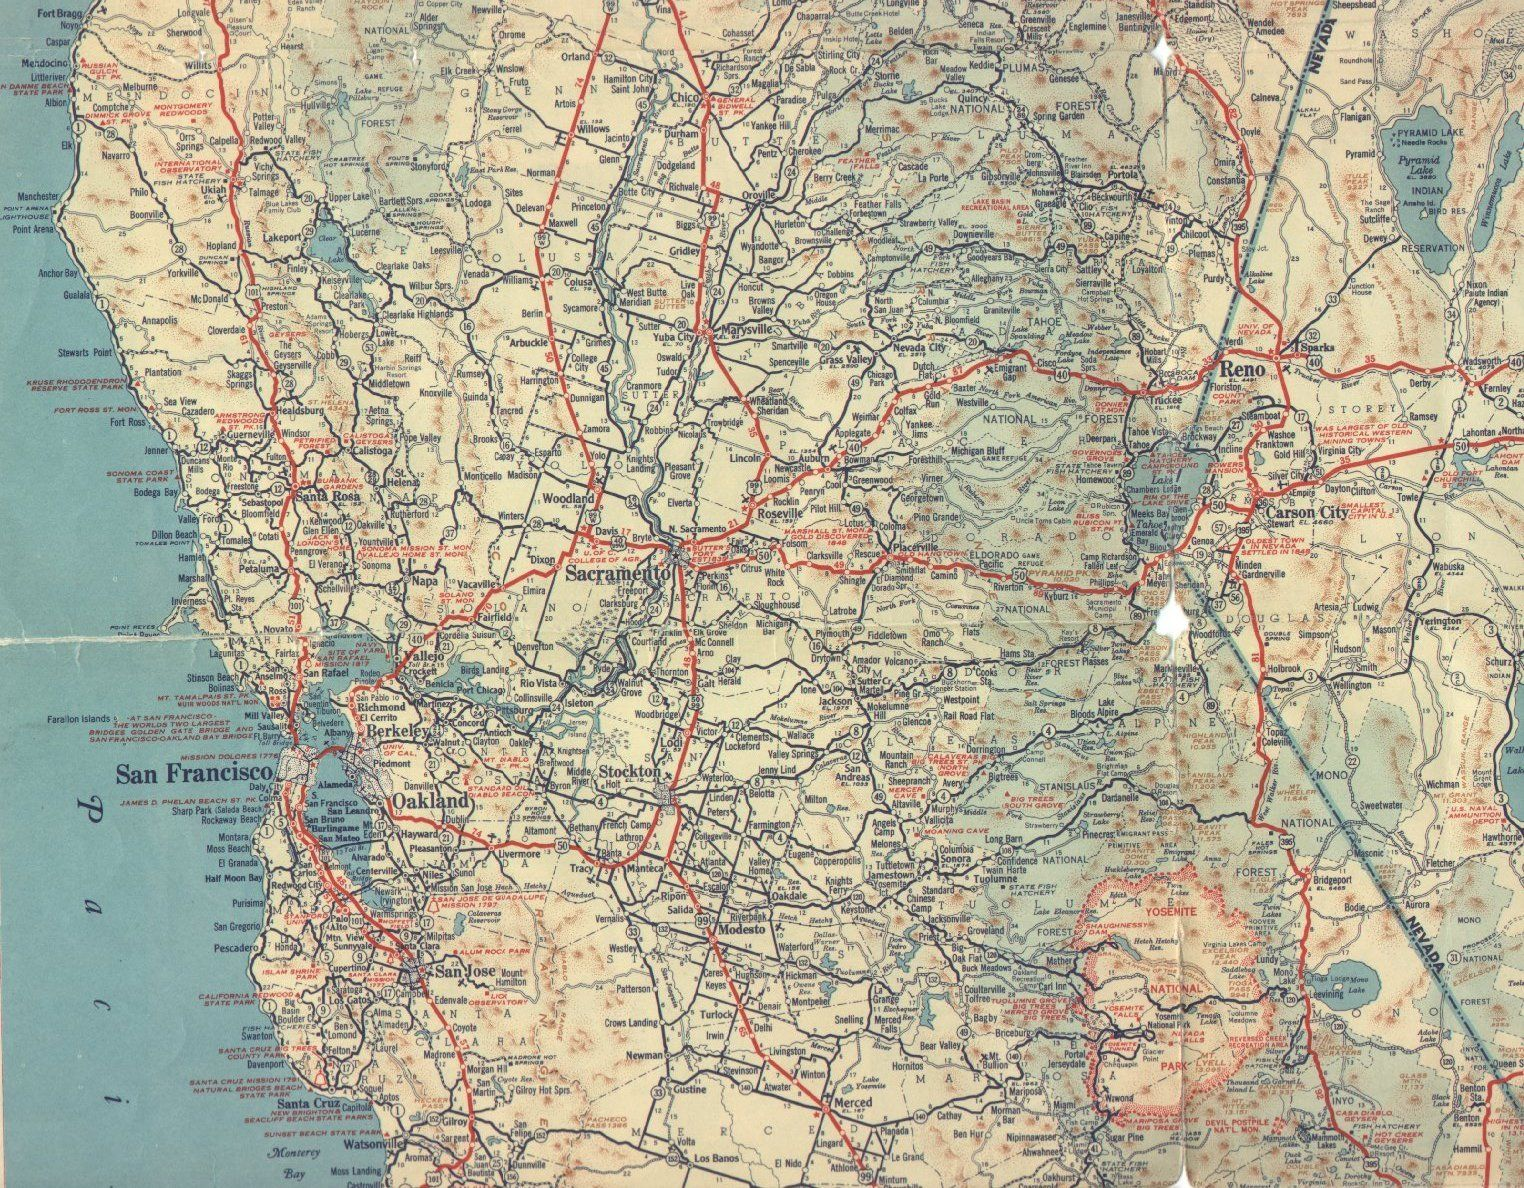 1939 North Central California | Maps of California in 2019 ...